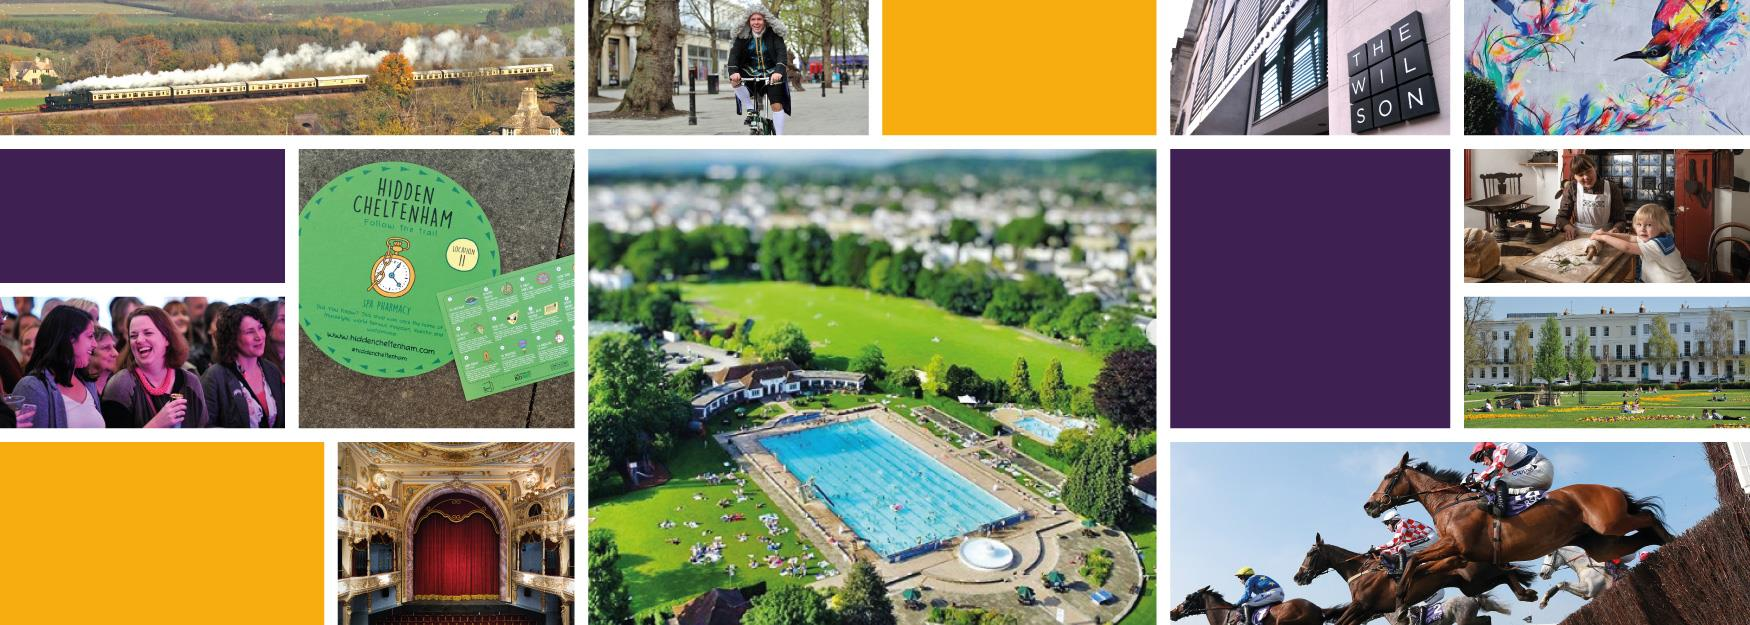 Collage of local attractions including Sandford Lido, Everyman Theatre and Great Western Steam Railway